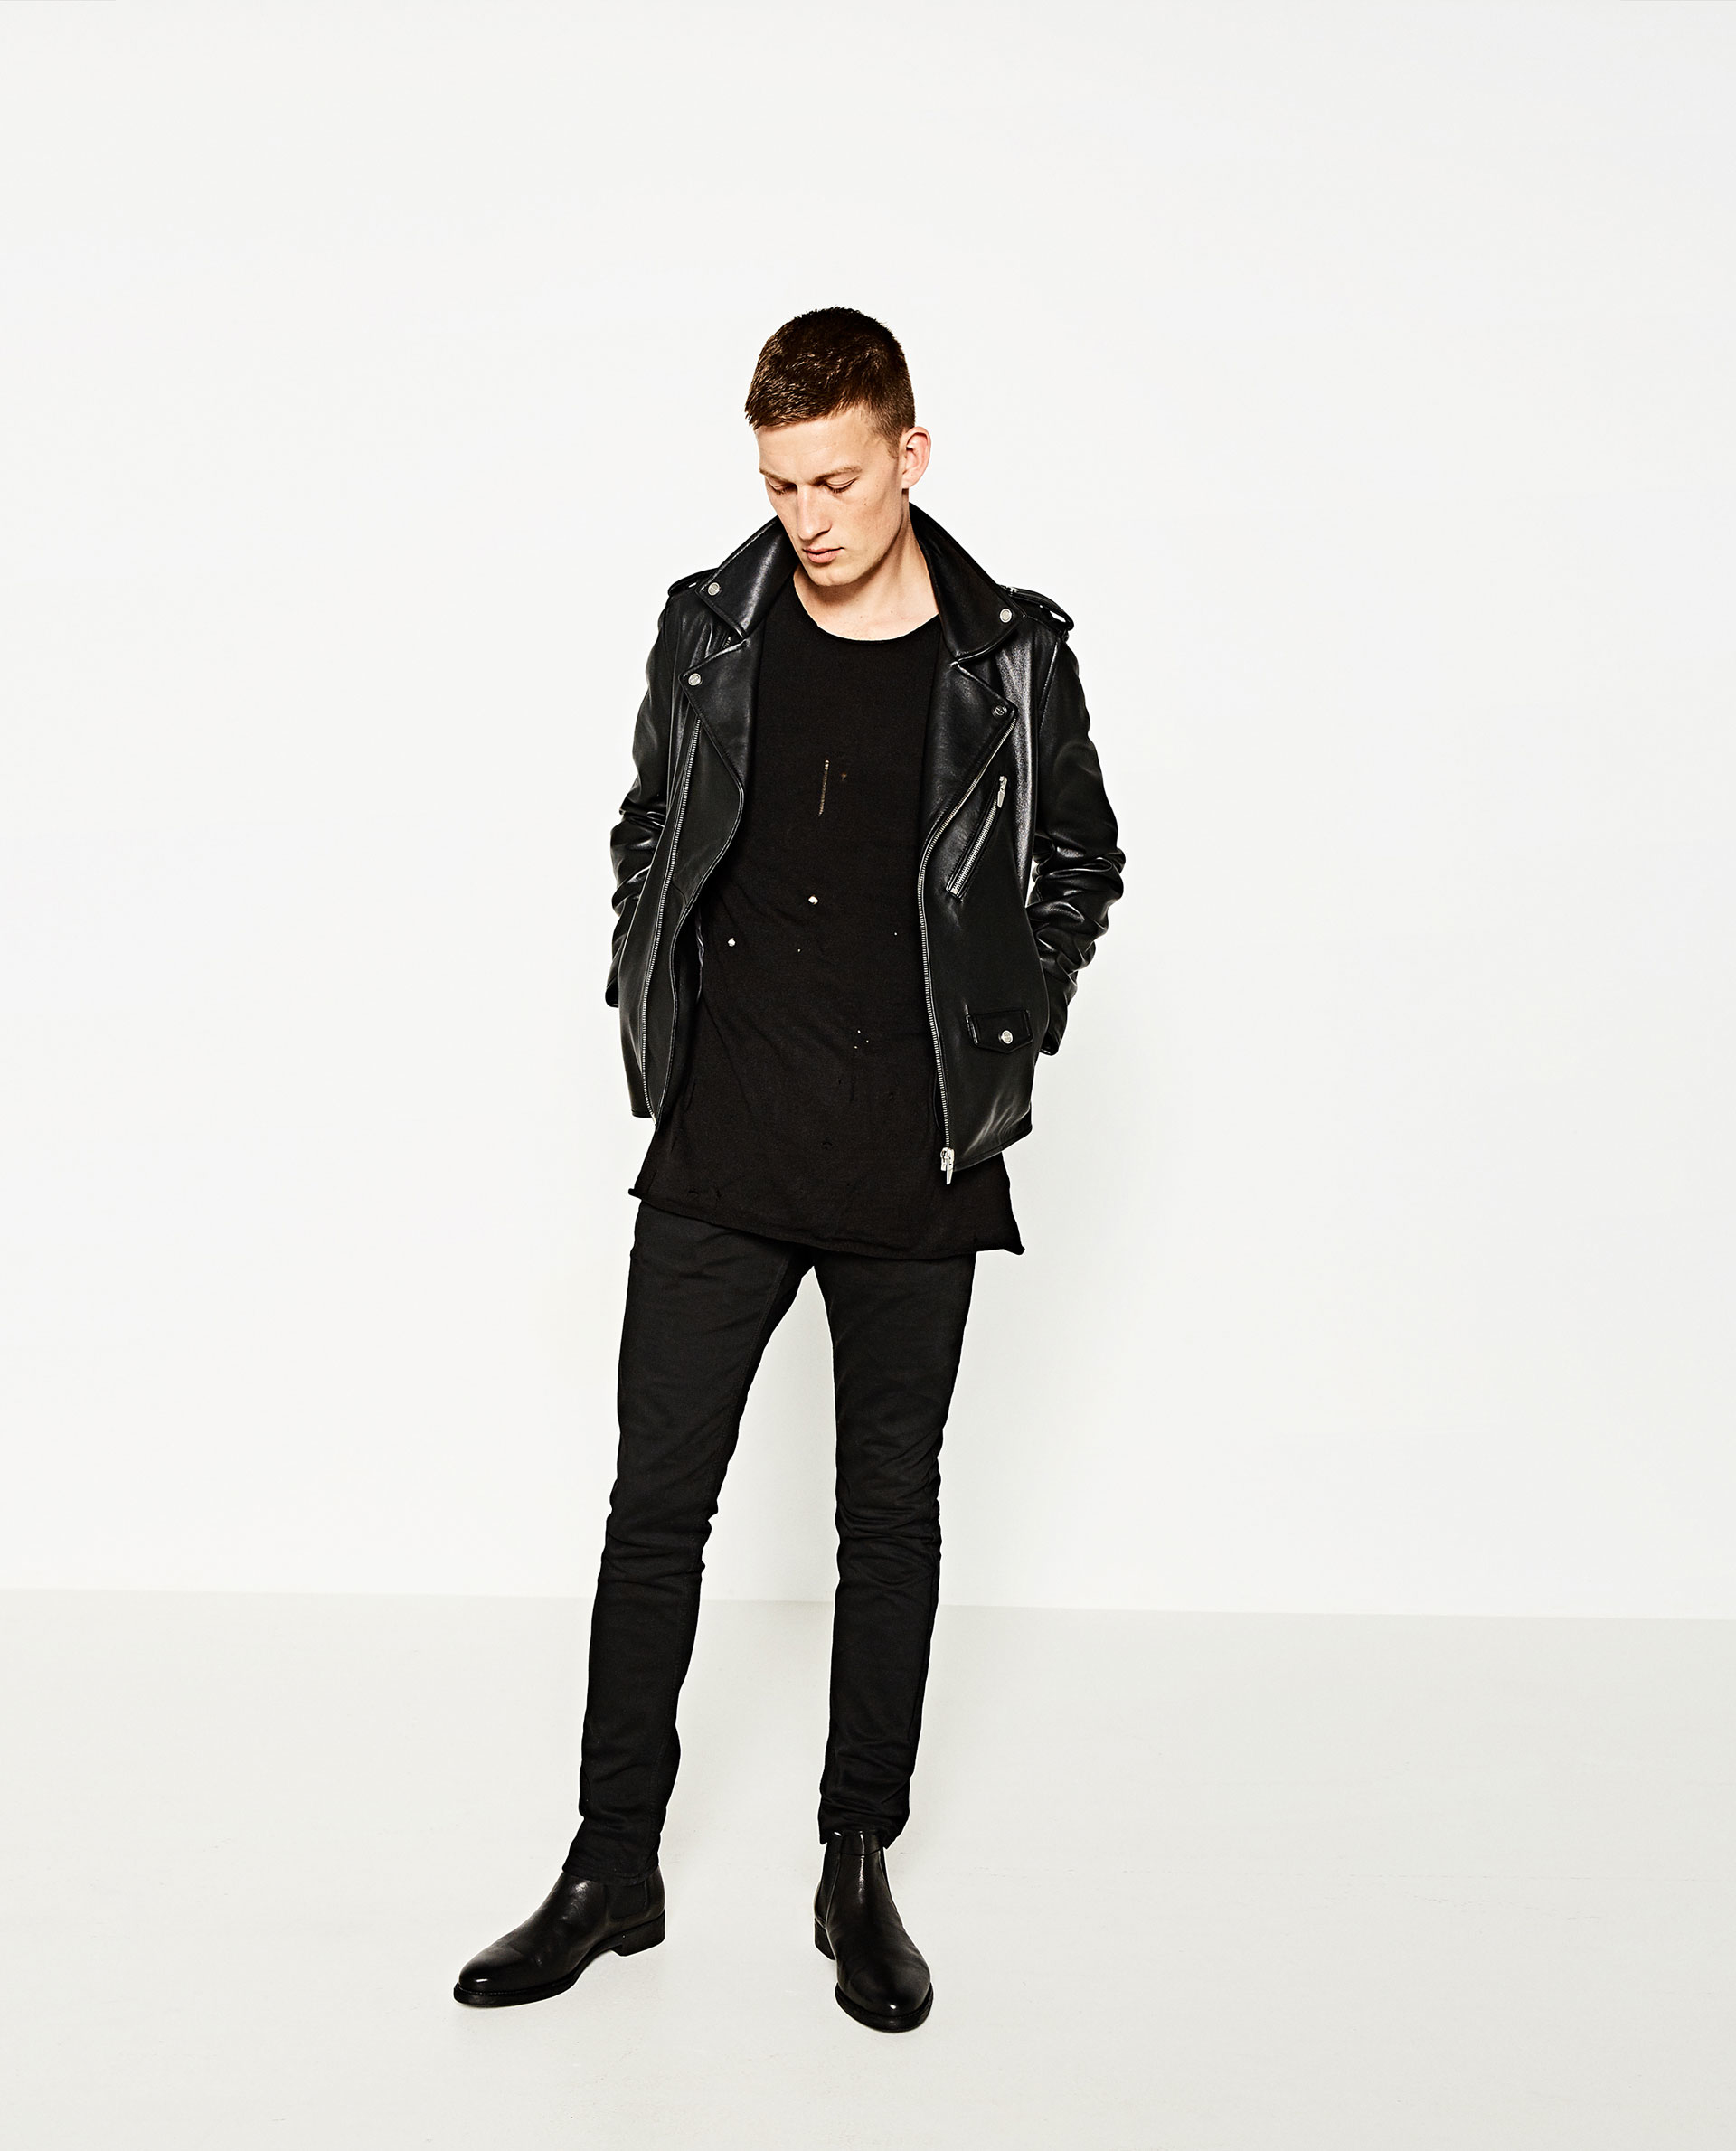 Zara is an international name in chic clothing for men, women, and children. Based in Spain, the retailer has 75 locations in the United States.